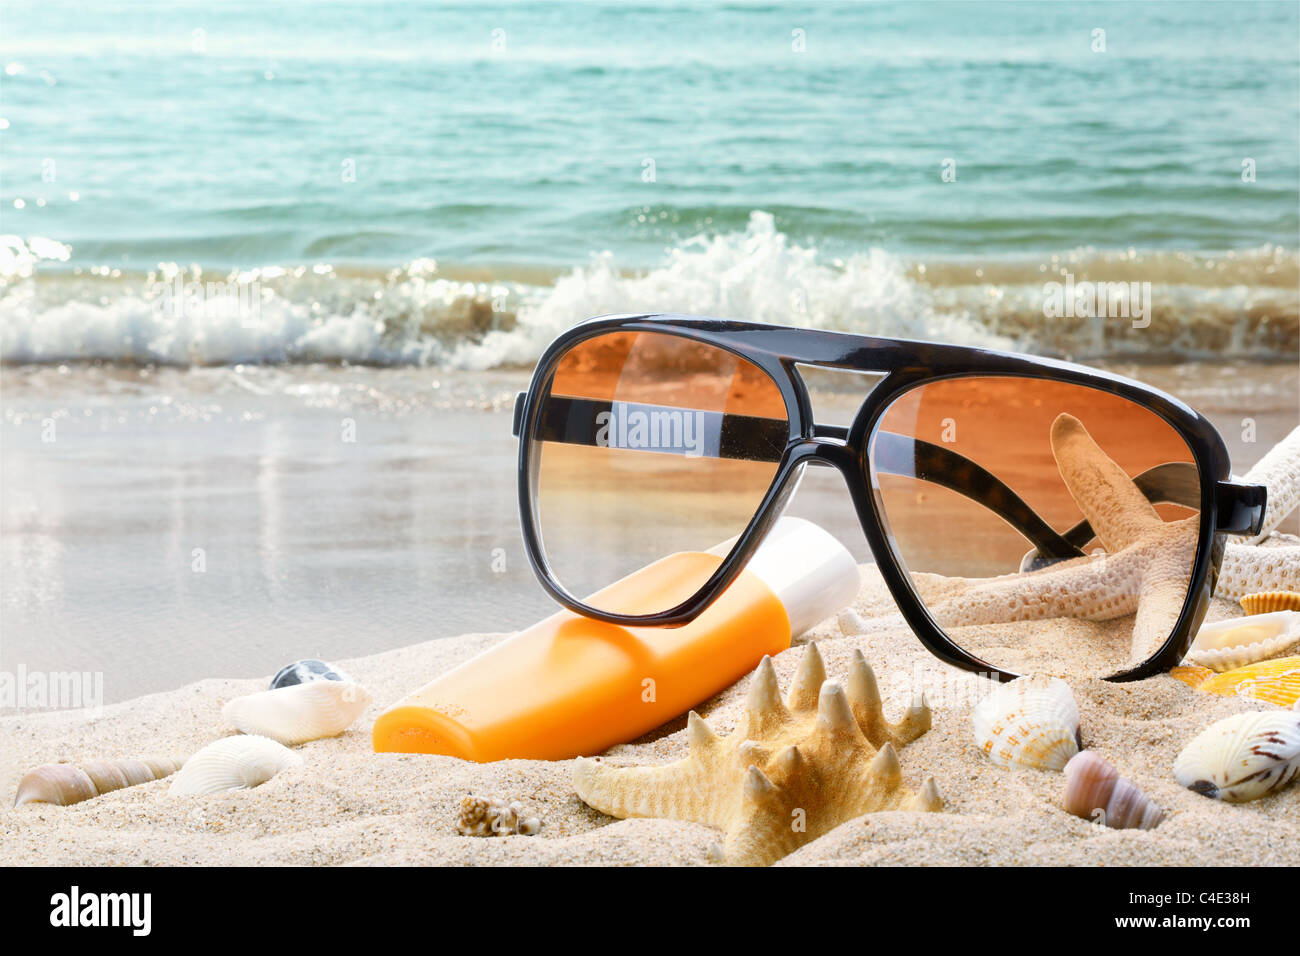 Sun glasses and bottle of balm solar on sandy beach. - Stock Image